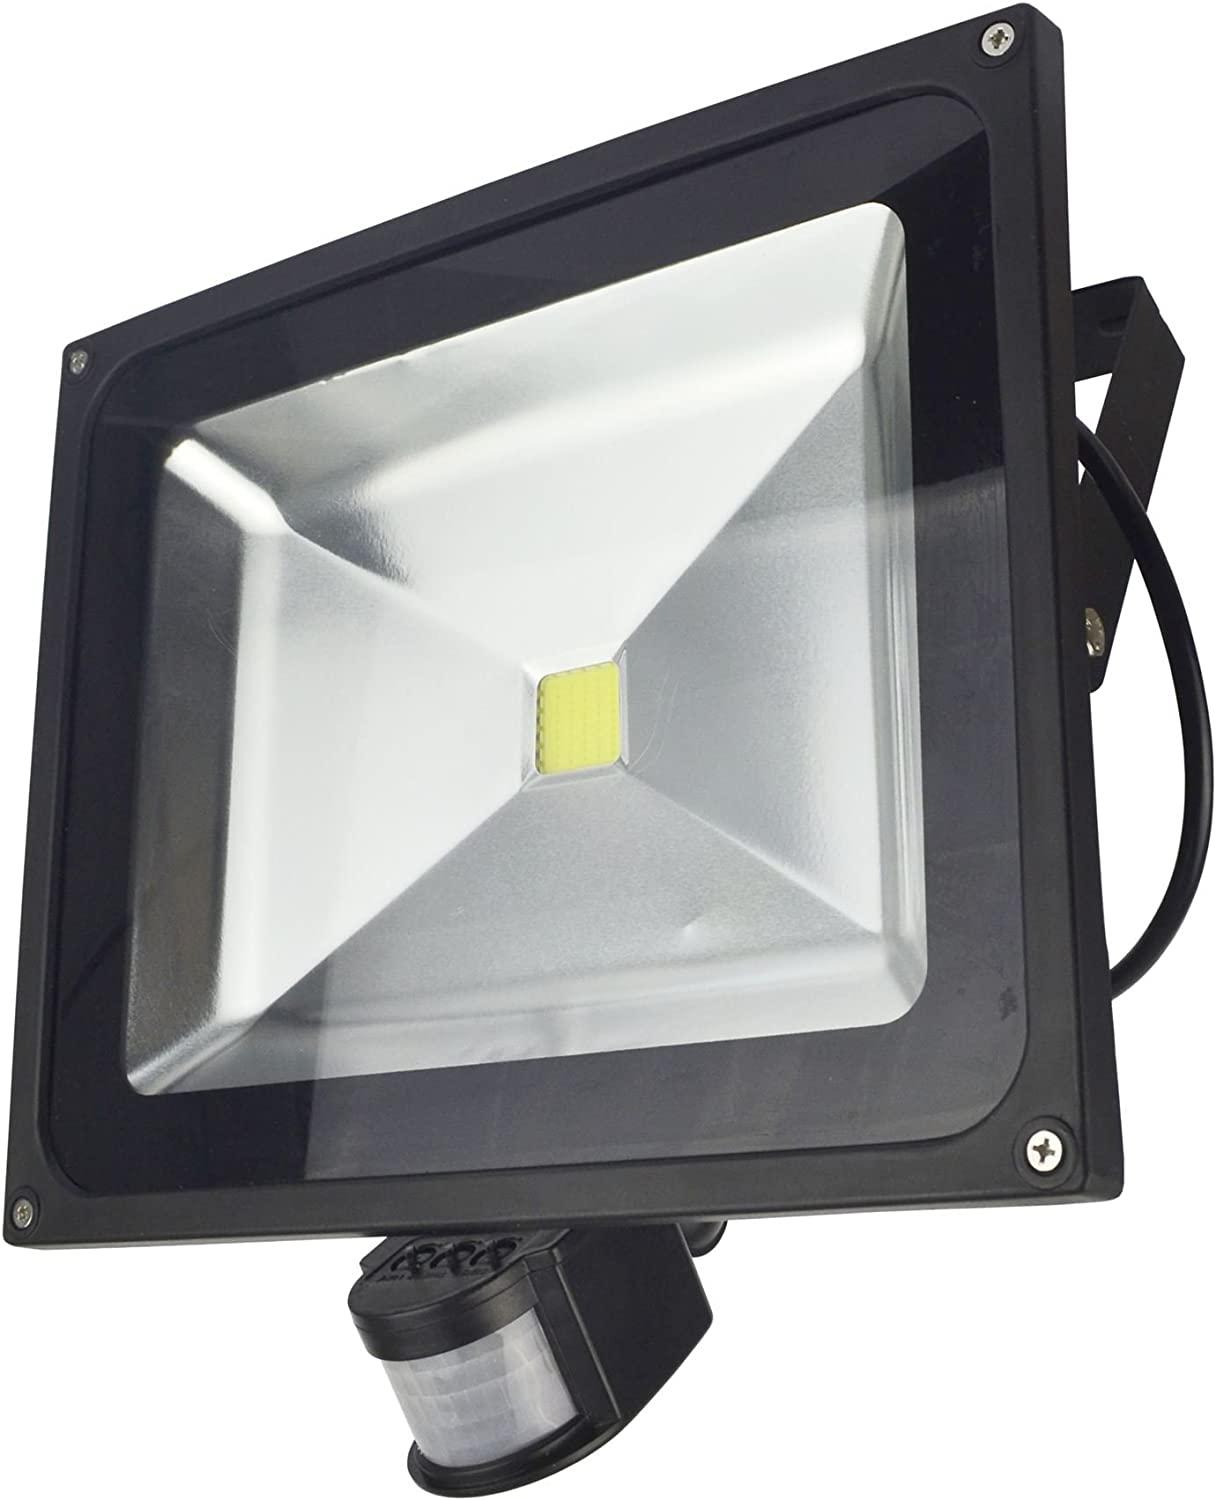 LED 50w Floodlight PIR Security Omaha Mall 3500 White Max 63% OFF Day Lumen Water 6000k